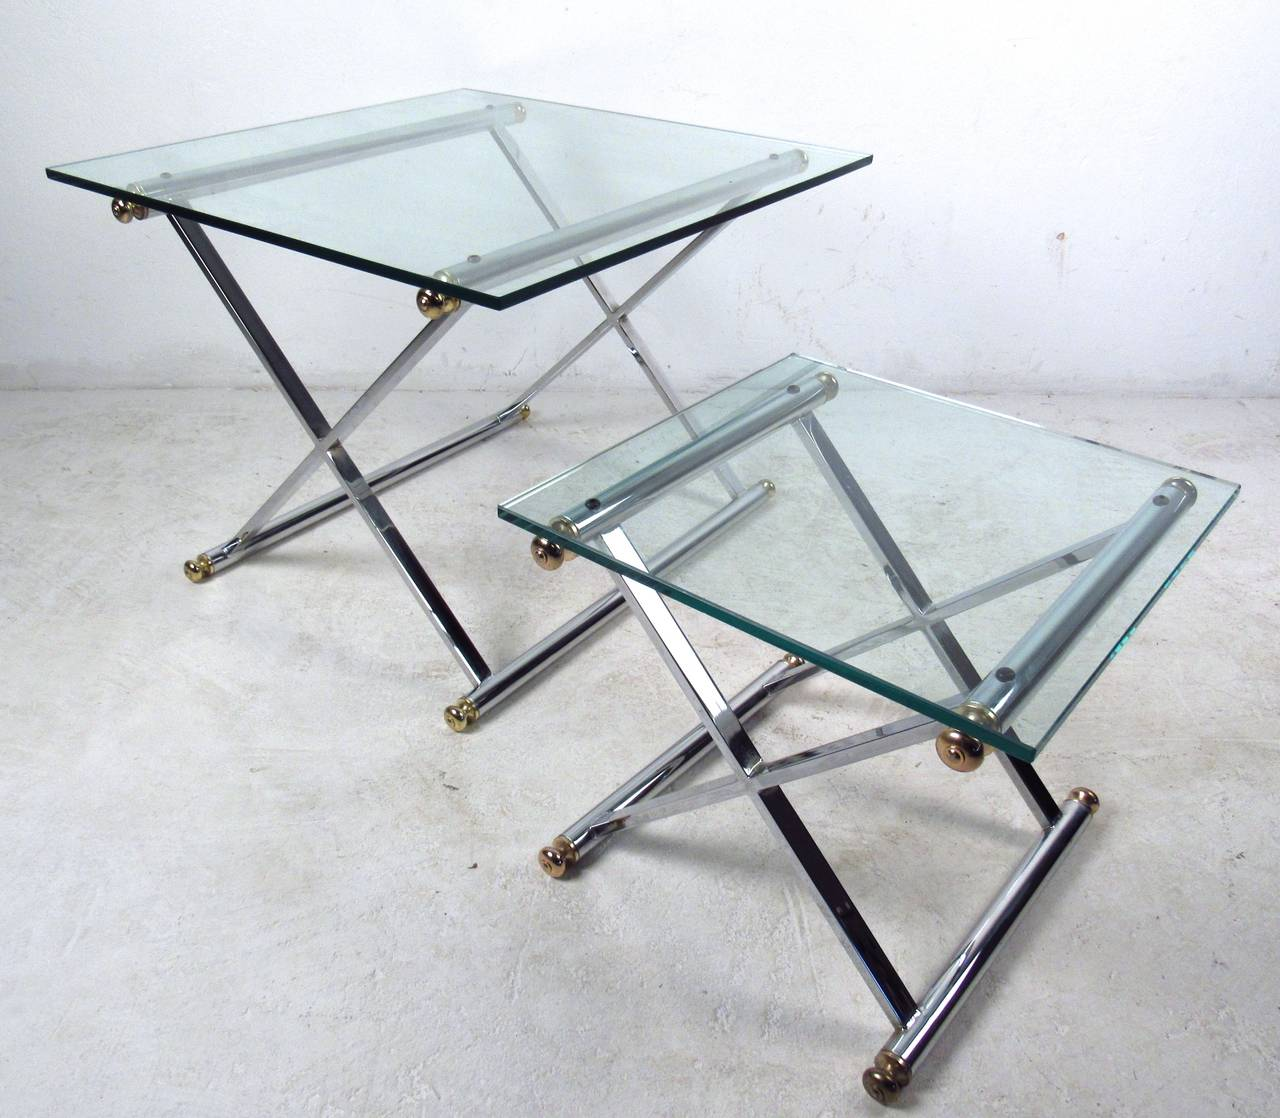 This matching pair of end tables features heavy chrome x-frame bases, unique brass details, and thick glass tops. Stylish addition to any seating area, please confirm item location (NY or NJ). The smaller table measures 17.5w x 17.5d 16h, the larger